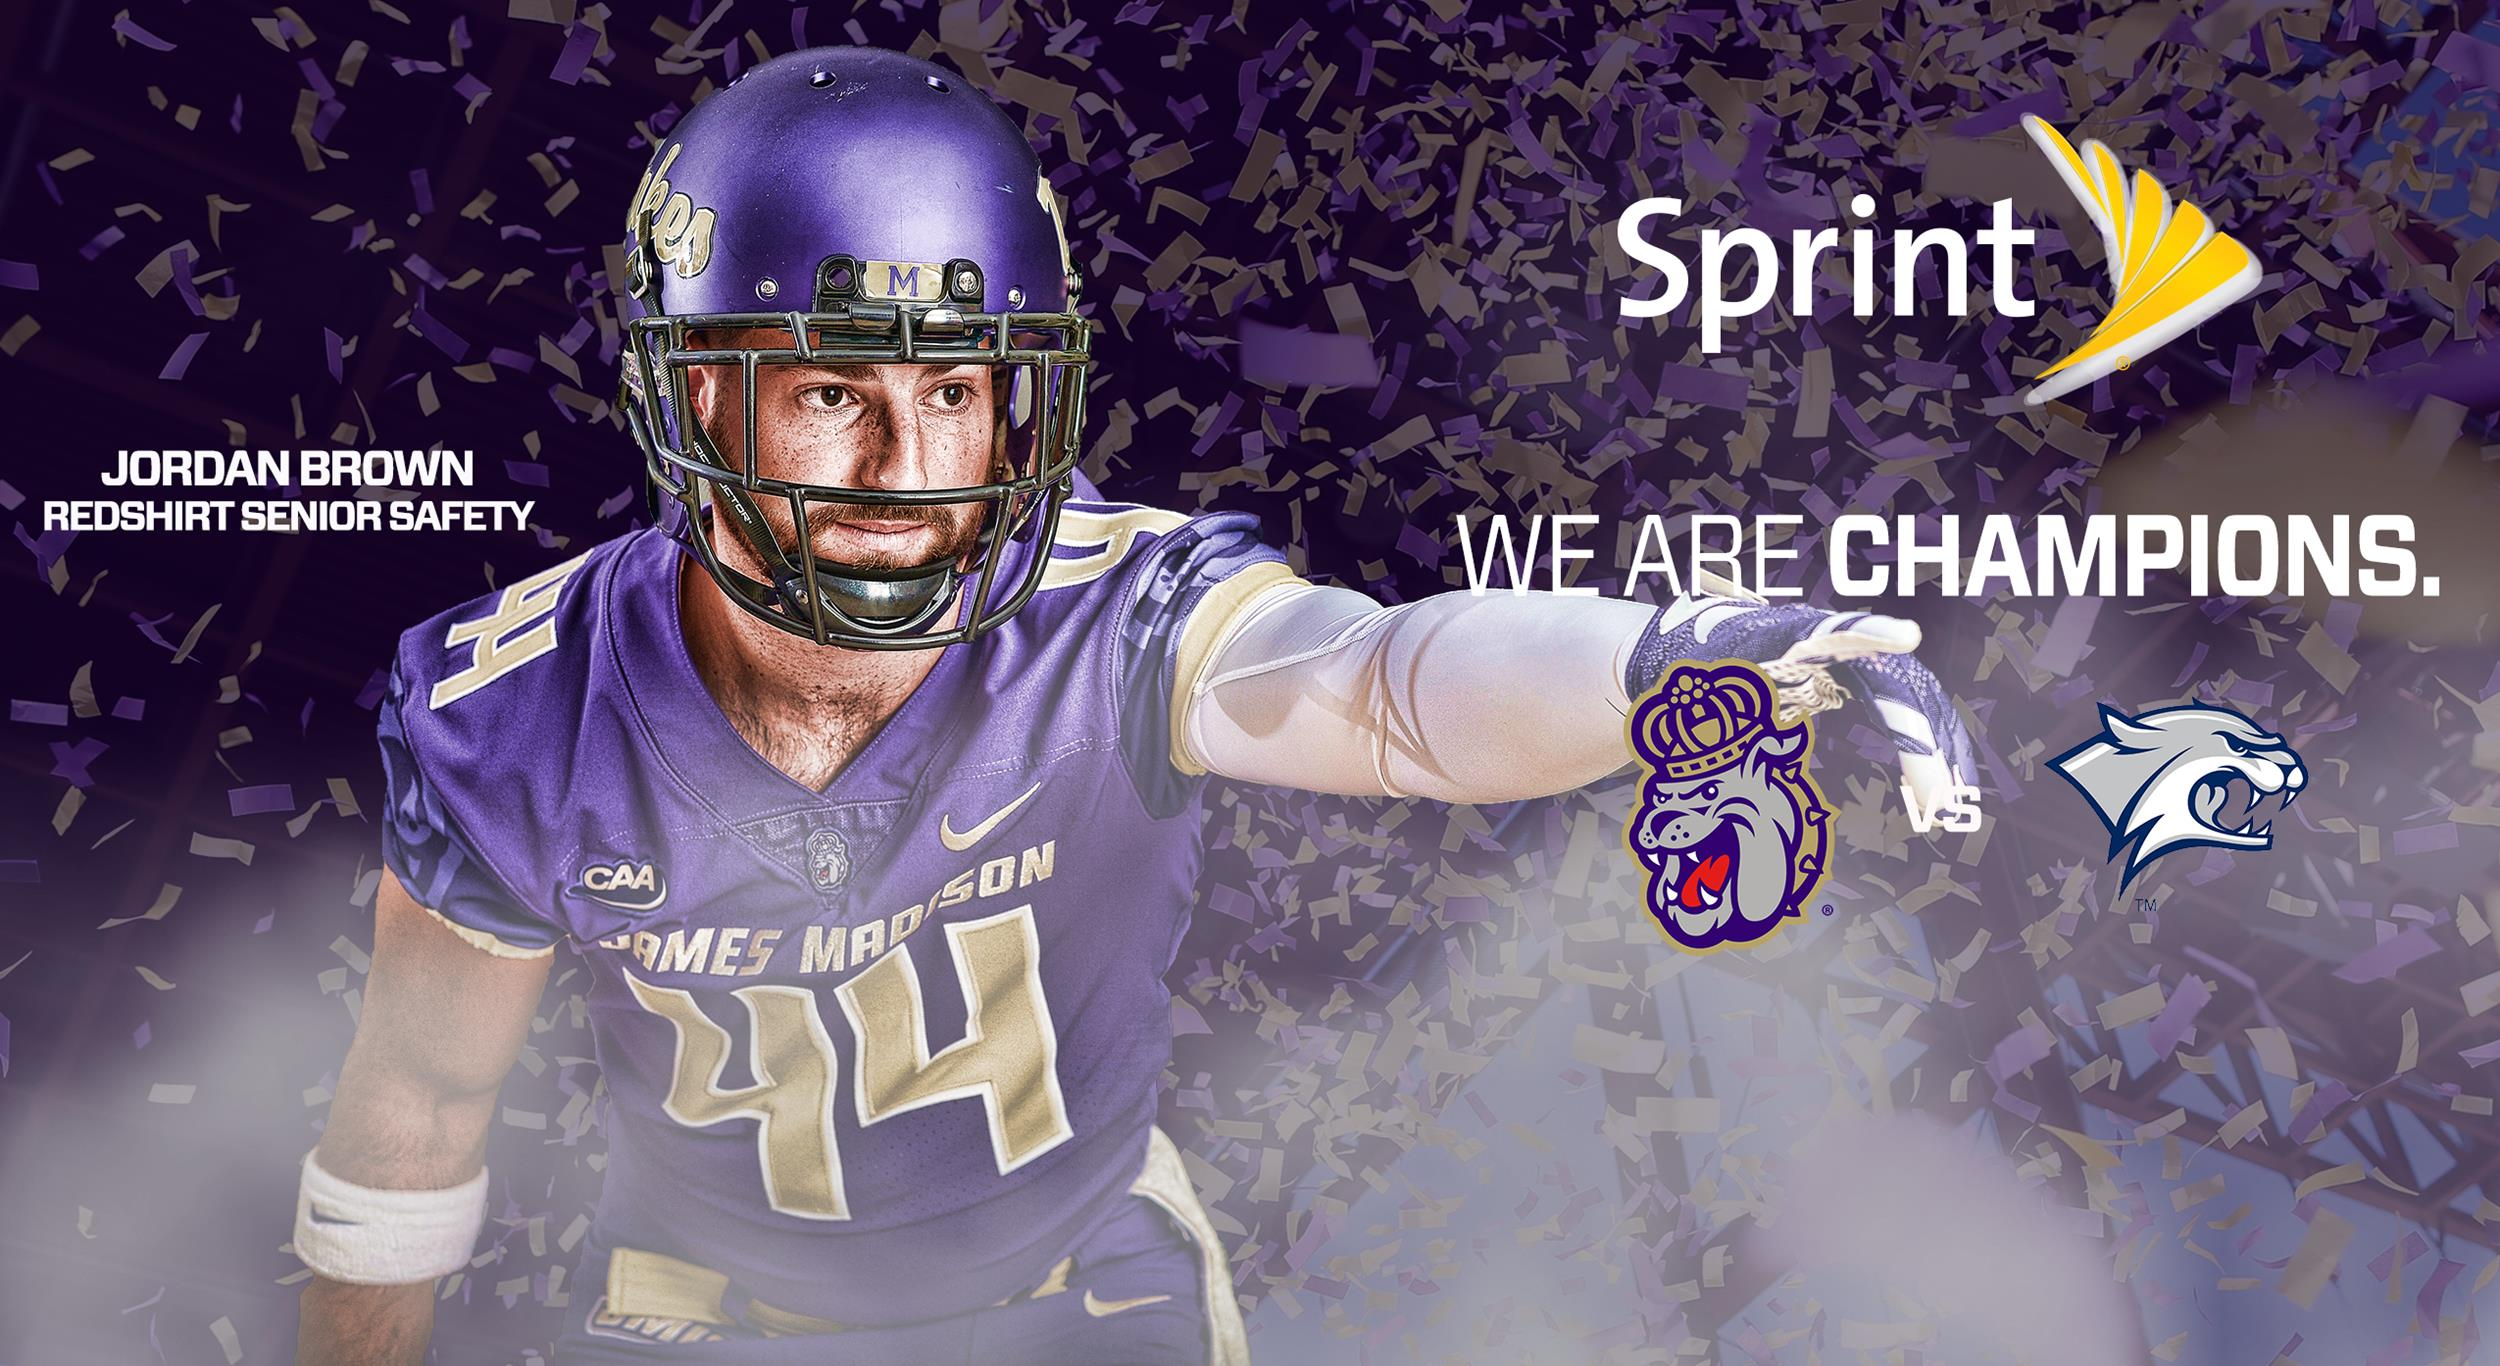 1 Jmu Hosts 17 New Hampshire In Playoff Rematch On Homecoming Weekend James Madison University Athletics